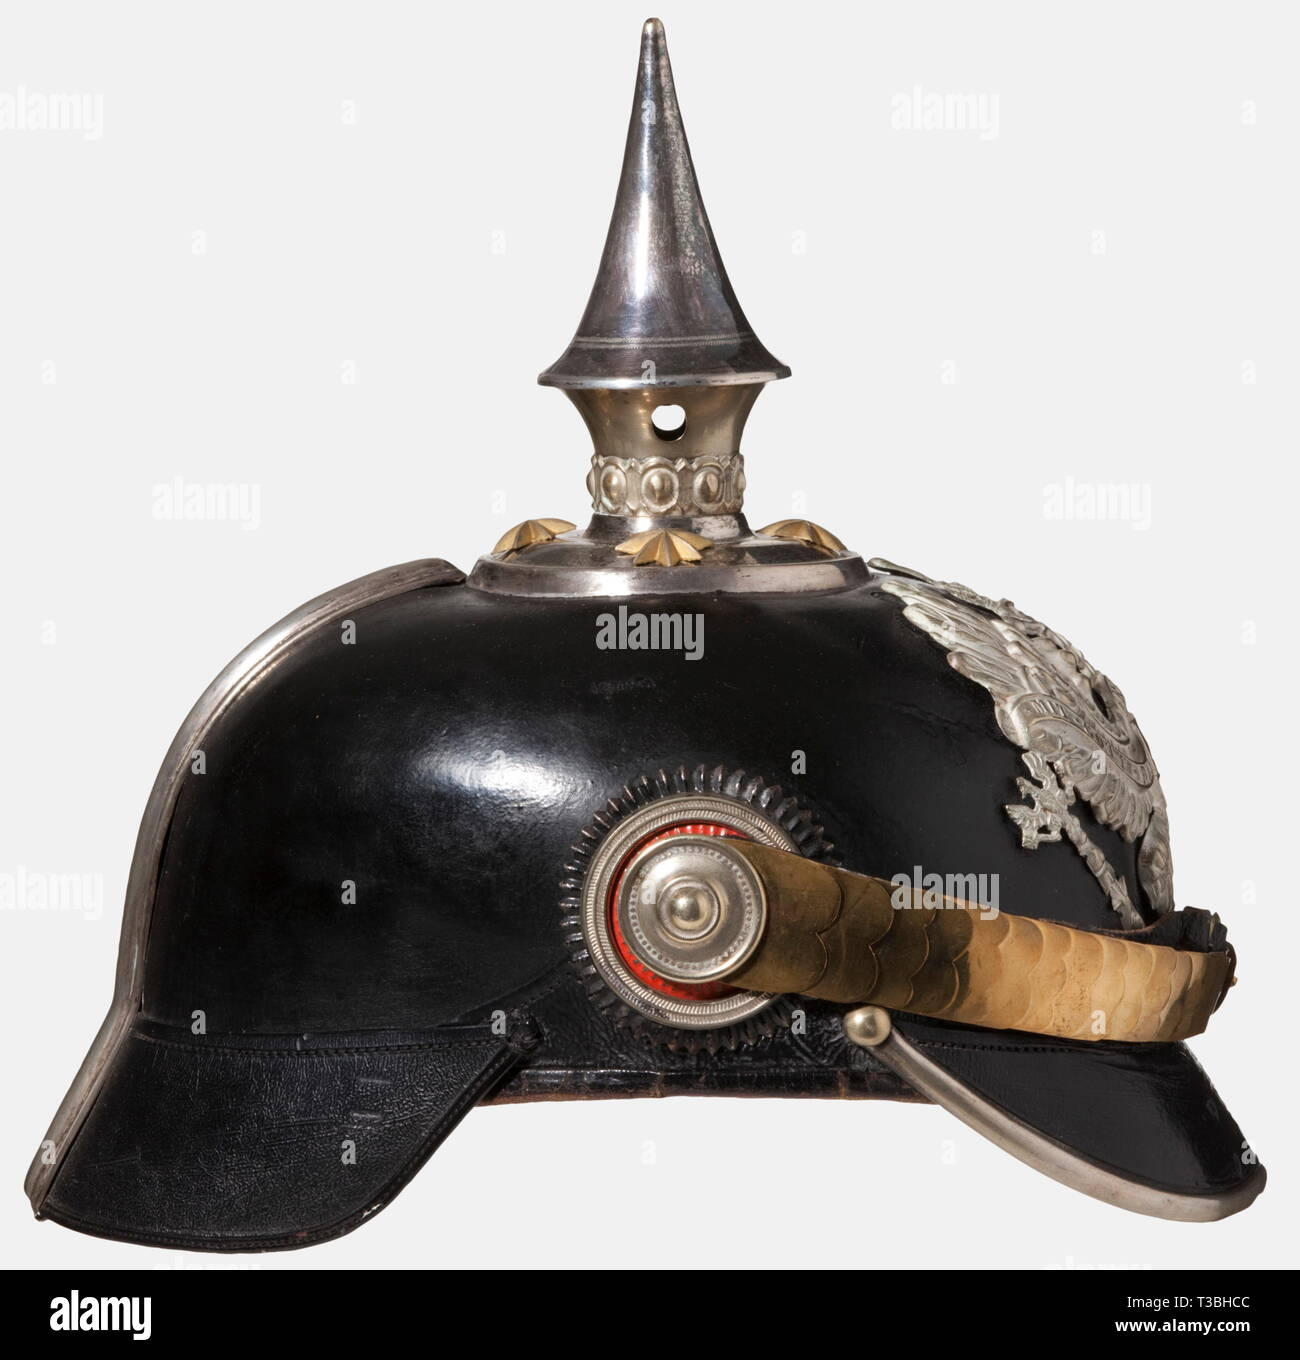 A helmet for officers, of the Prussian Line Pioneer Battalions Black-lacquered fiber body, silver-plated mountings. Line unit eagle. Gilded star screws and flat metal chinscales. Officer's cockades. Beige-coloured ribbed silk lining, torn. Good overall condition, signs of age and wear. historic, historical, 19th century, Prussian, Prussia, German, Germany, militaria, military, object, objects, stills, clipping, clippings, cut out, cut-out, cut-outs, helmet, helmets, headgear, headgears, protection, protective, uniform, uniforms, utensil, piece of, Additional-Rights-Clearance-Info-Not-Available - Stock Image